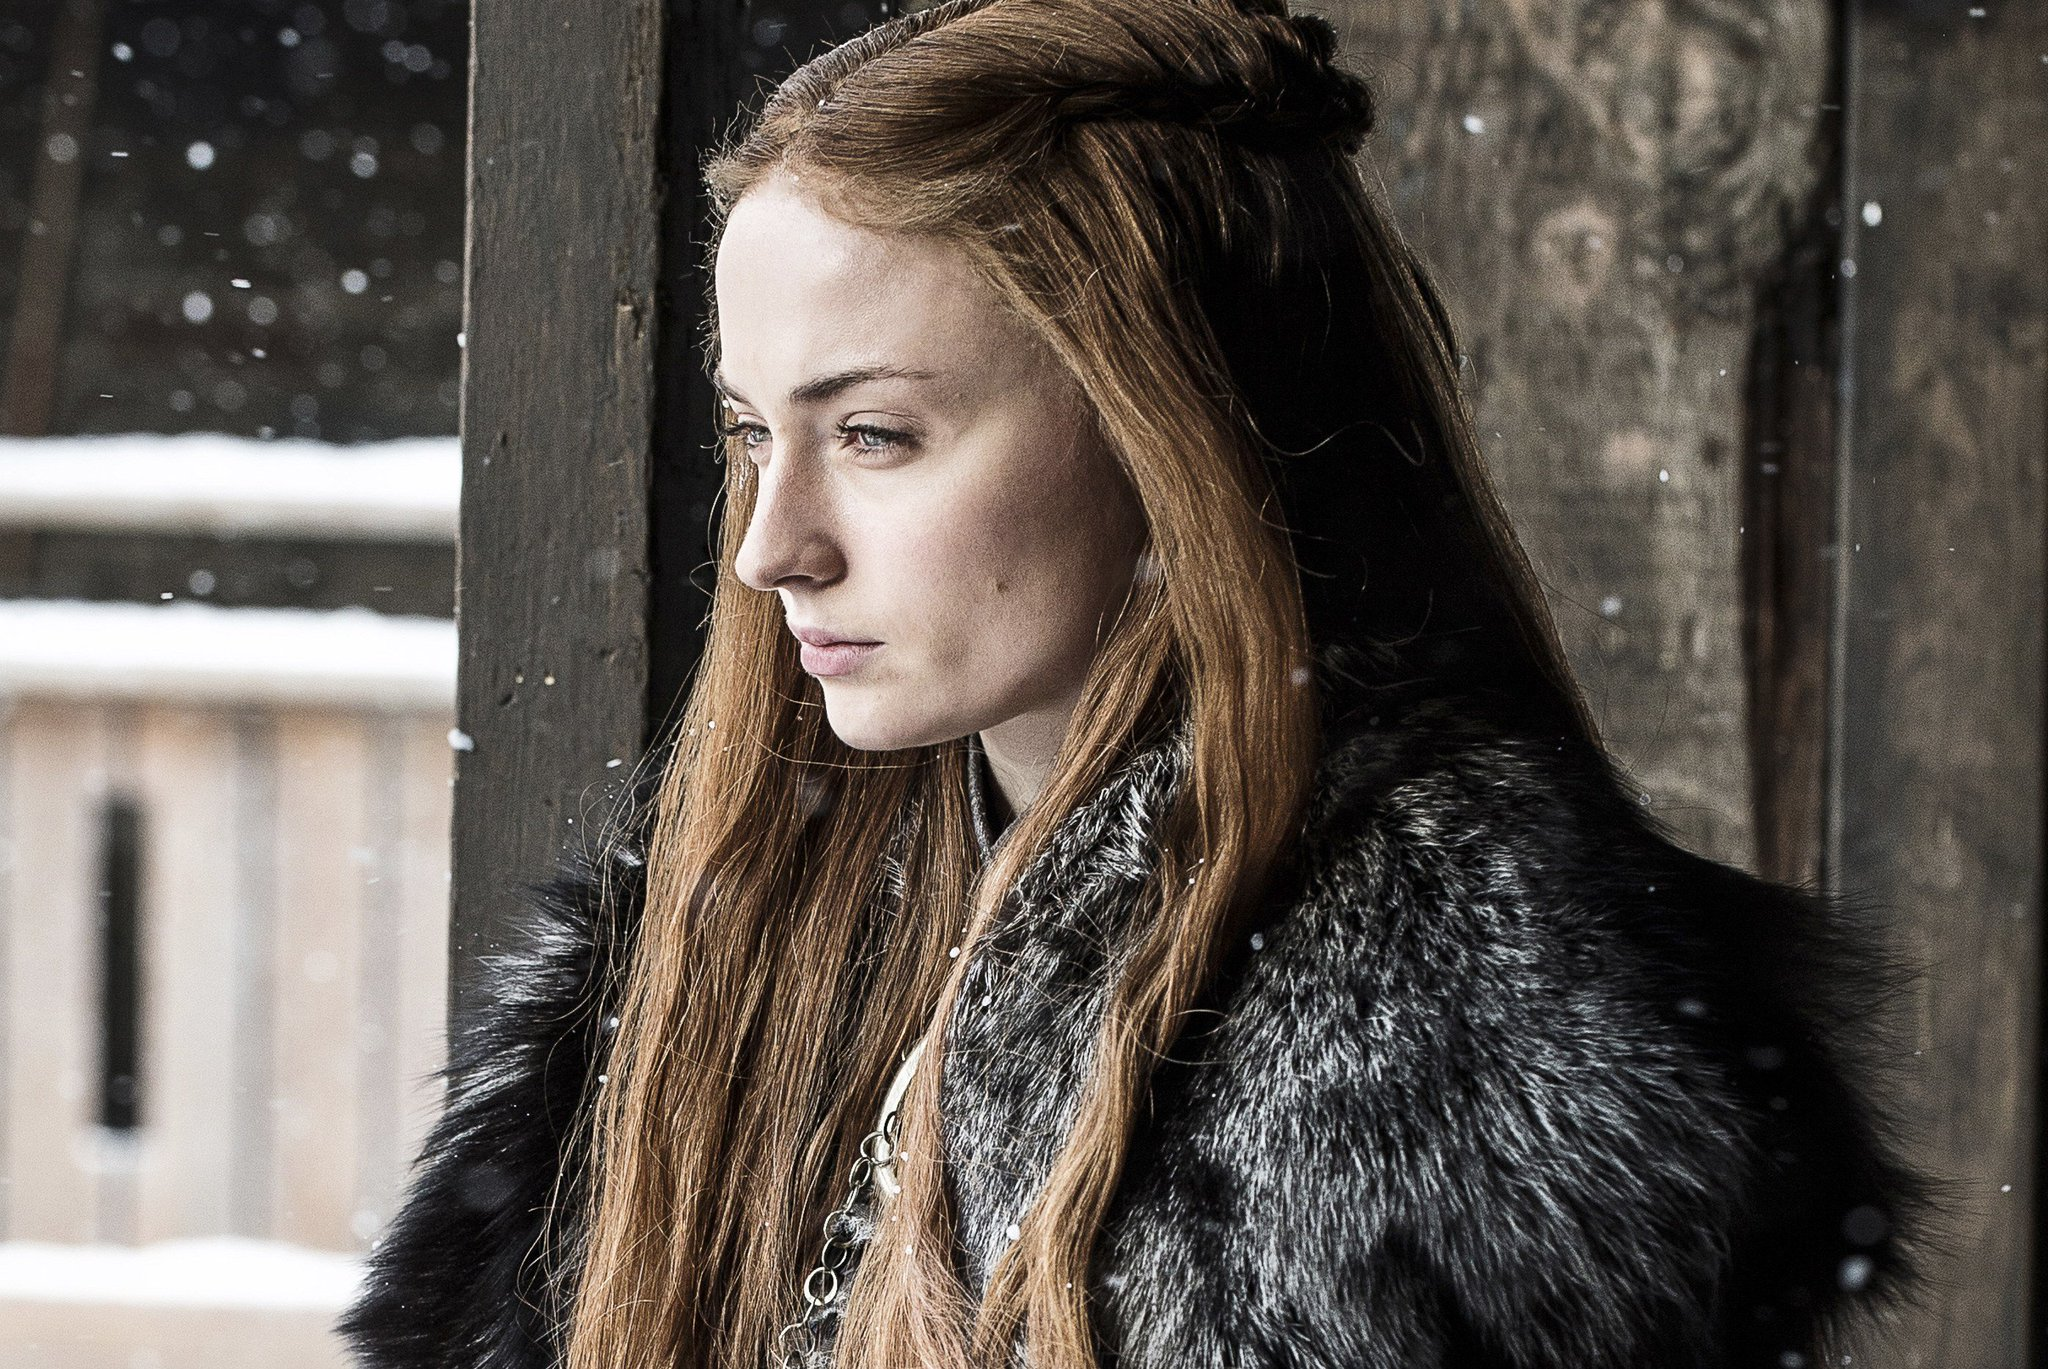 If this #GameofThrones theory about Sansa and Arya came true, it'd be epic: https://t.co/NEki12IbYj https://t.co/1xfC7TzC7q